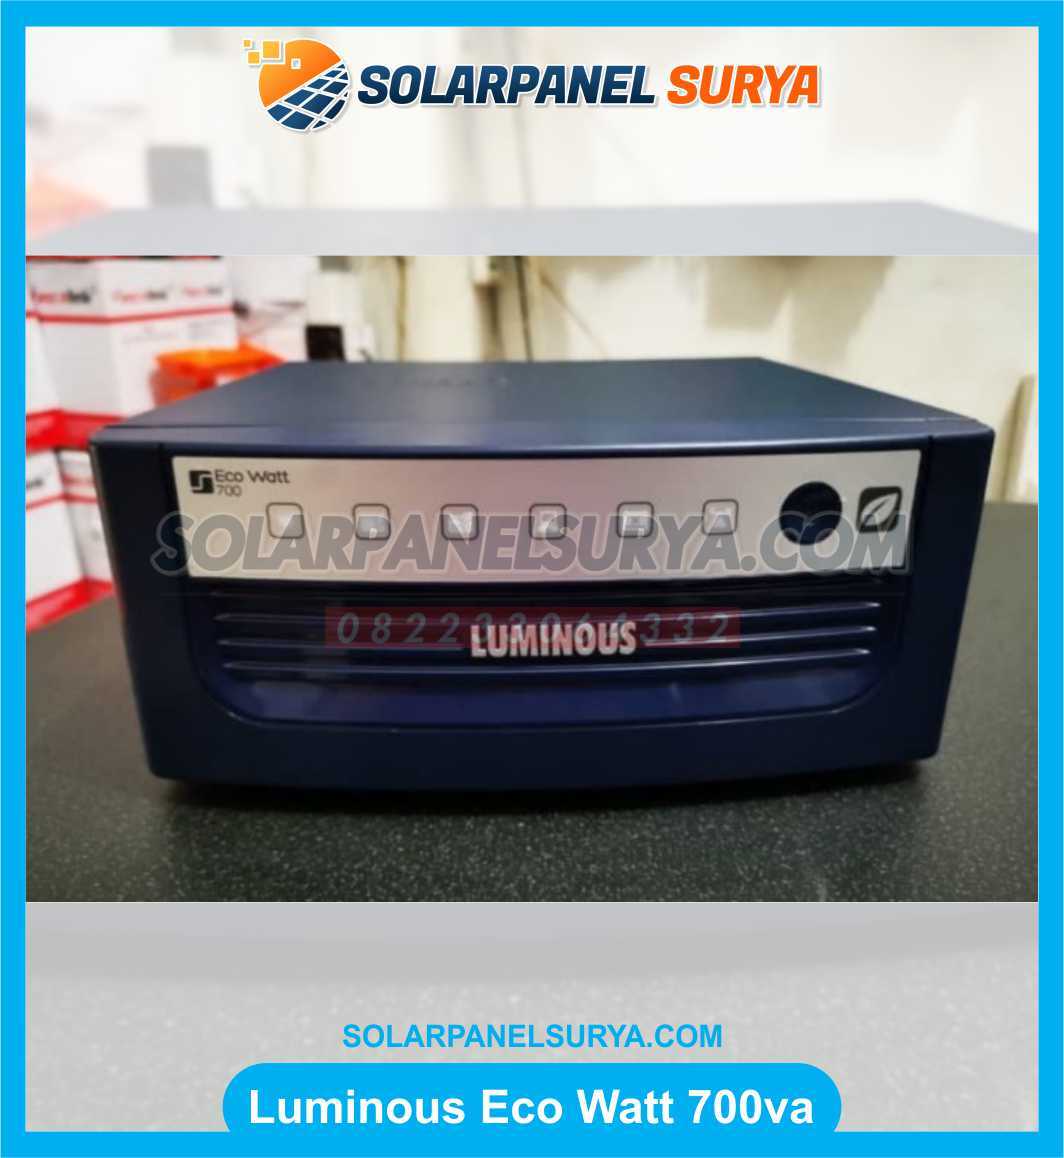 jual Inverter Square Wave Luminous Eco Watt 700va